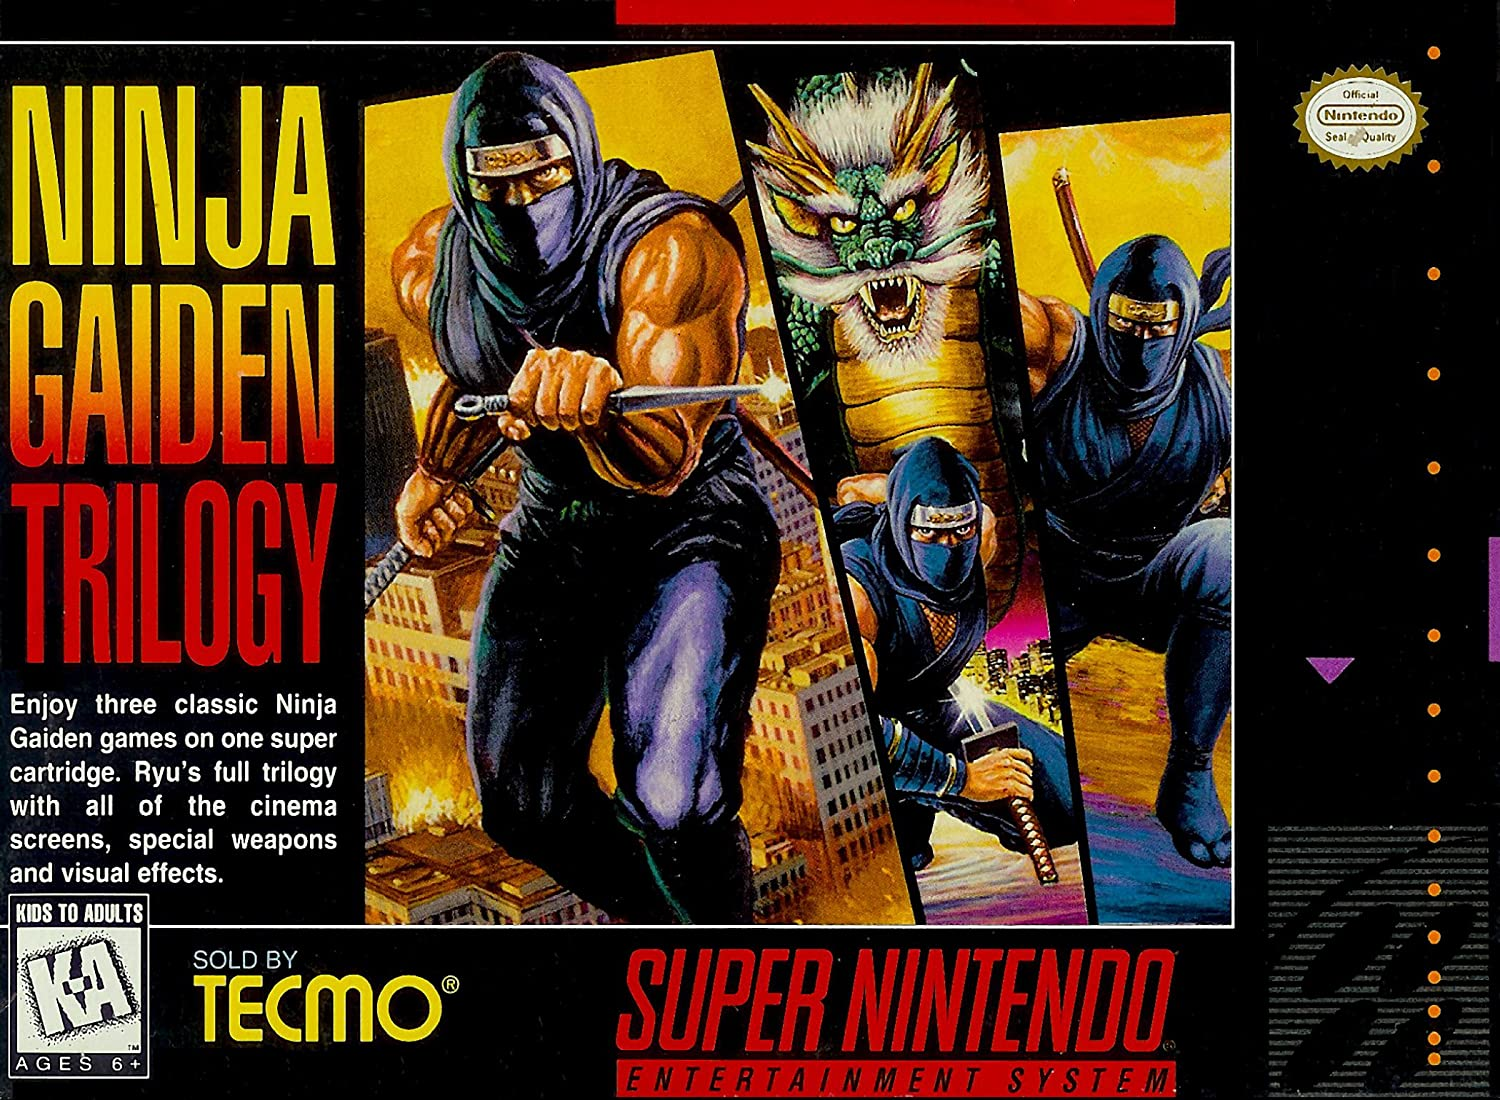 Amazon.com: Ninja Gaiden Trilogy - (Super Nintendo, SNES ...